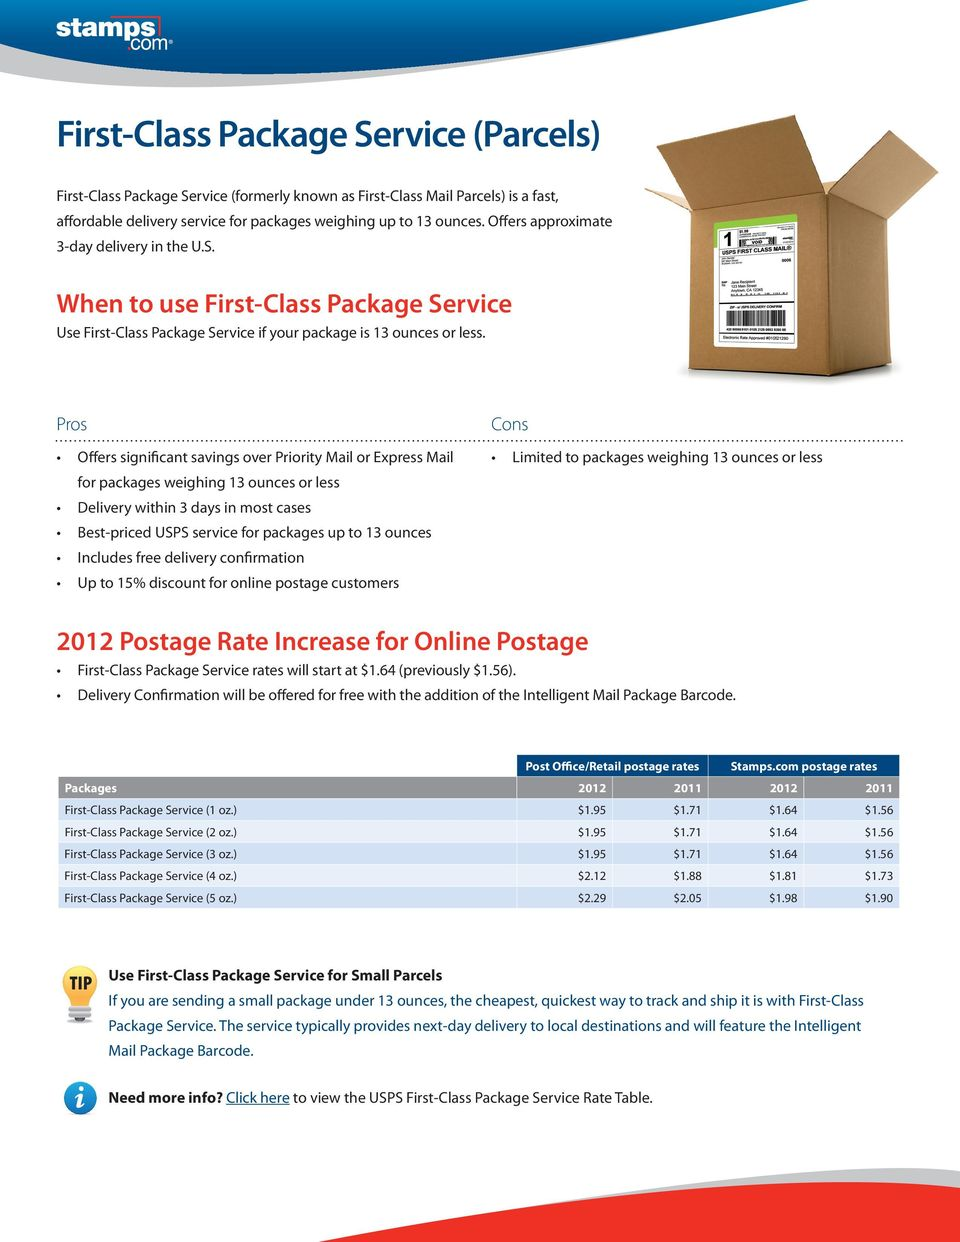 Offers significant savings over Priority Mail or Express Mail for packages weighing 13 ounces or less Delivery within 3 days in most cases Best-priced USPS service for packages up to 13 ounces